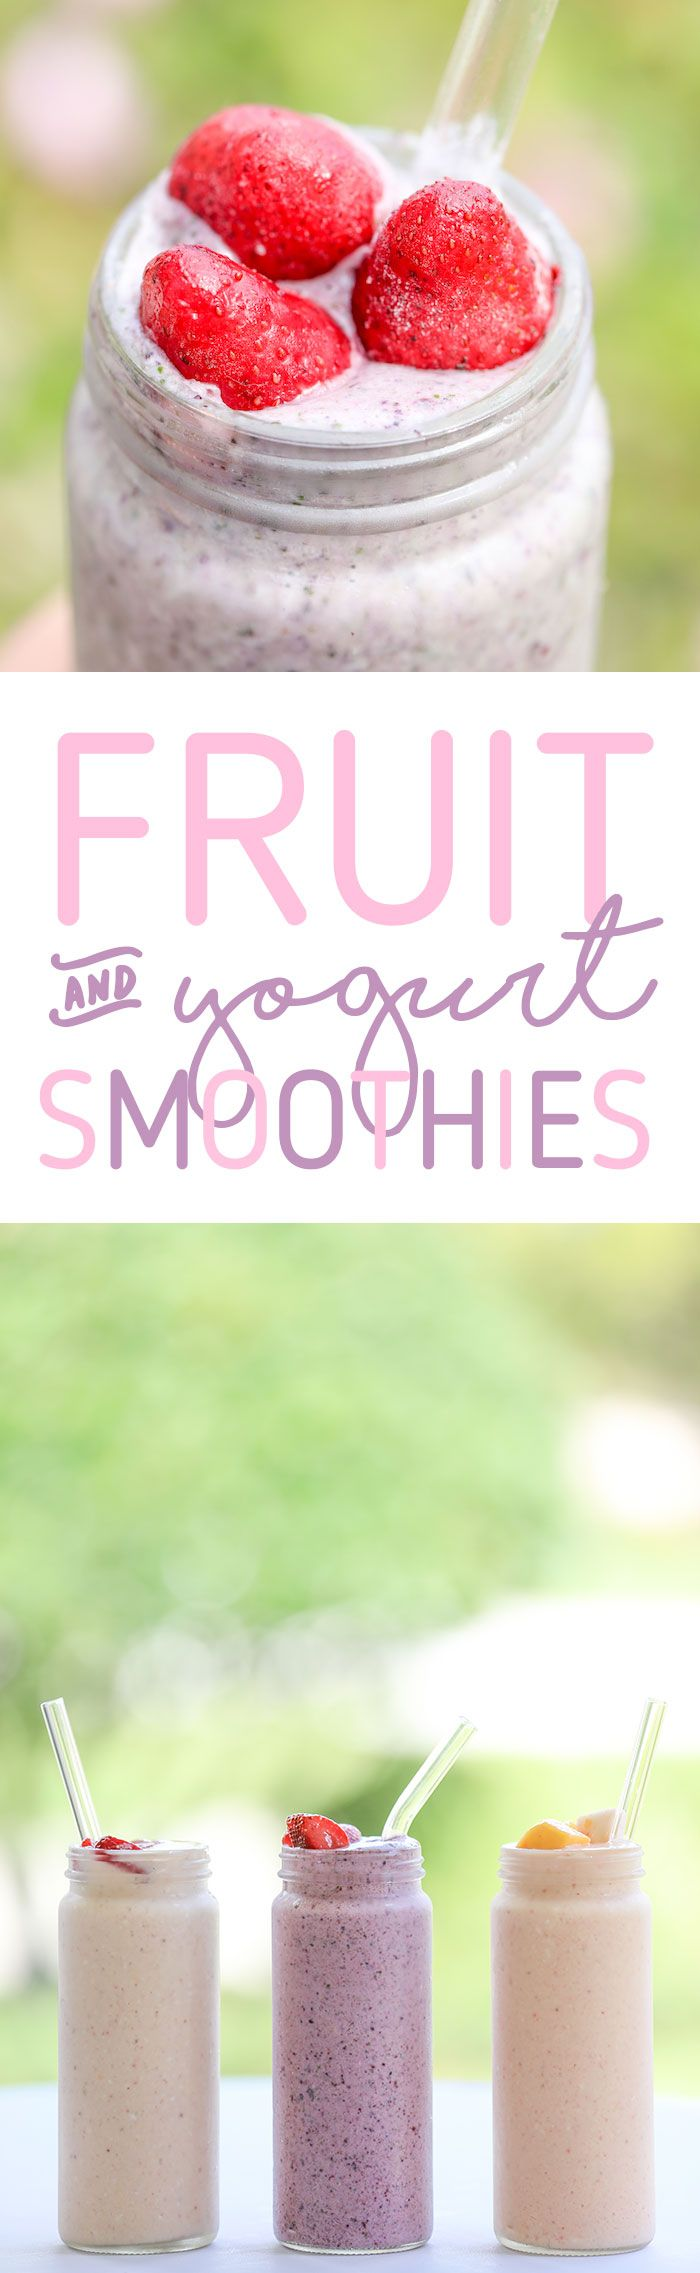 Fruit & Yogurt Smoothie Recipes! It's smoothie ingredient stock up time with this special sale at Publix. Click to get details. #ad